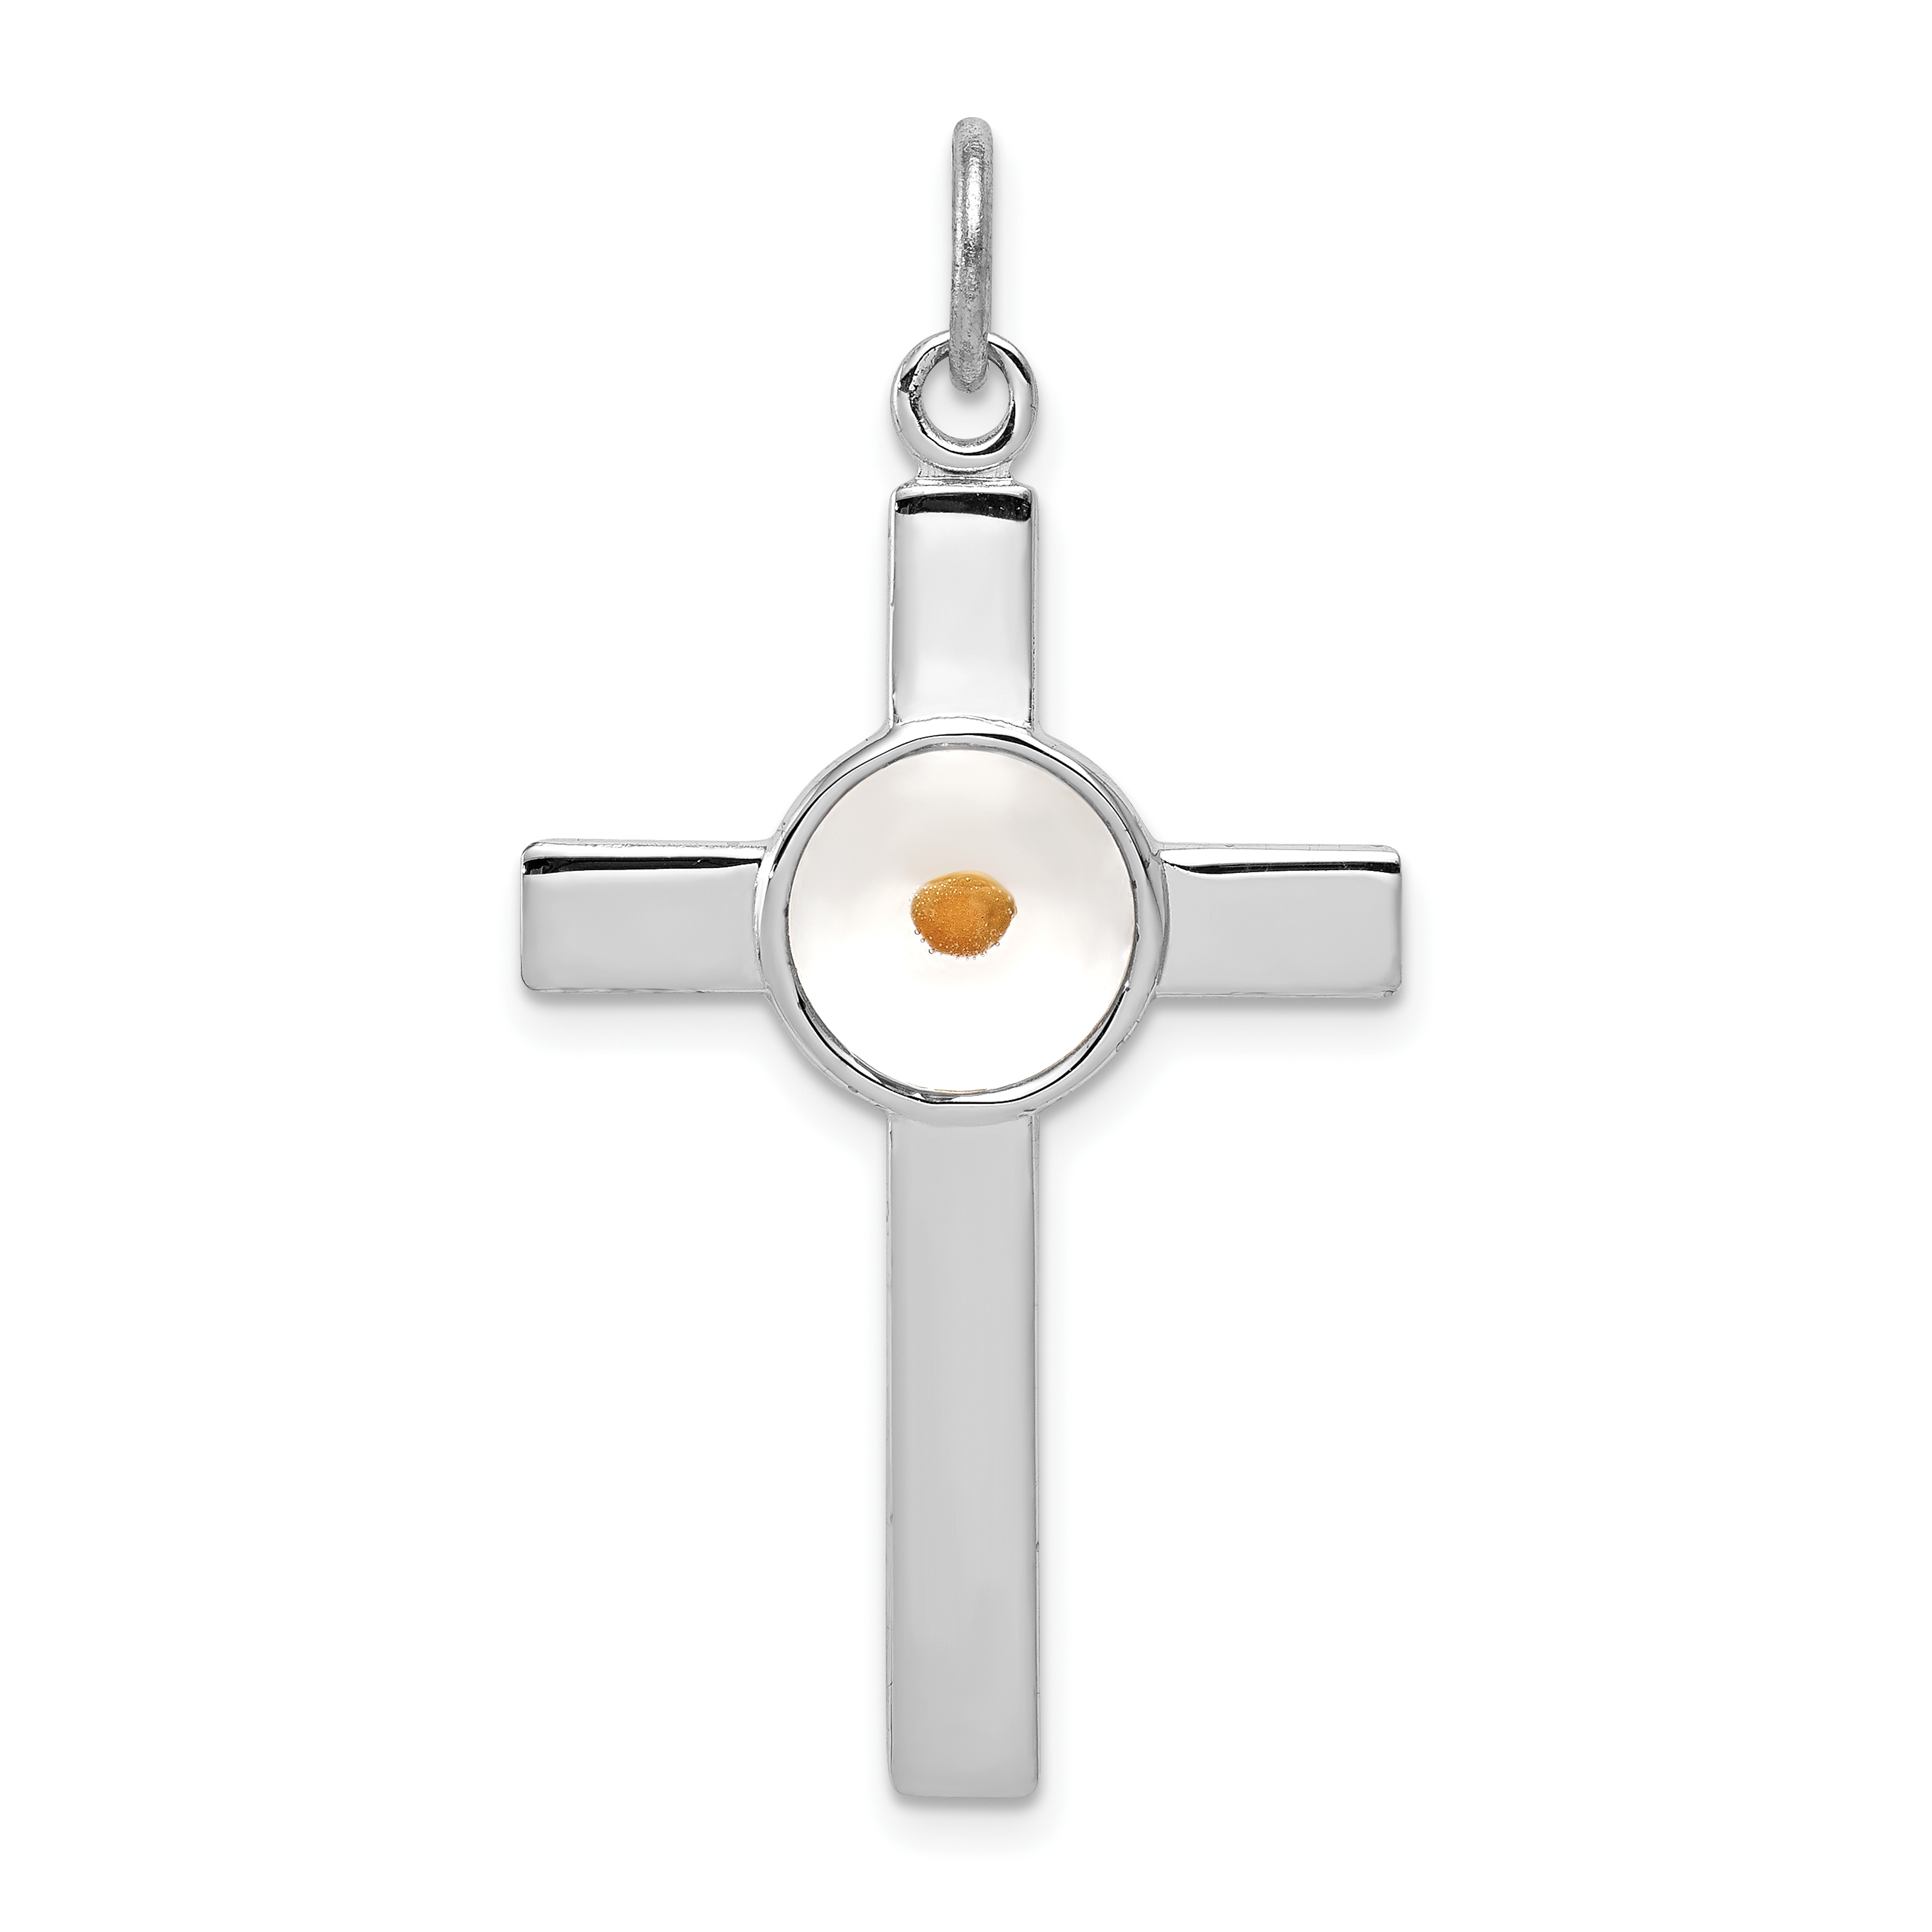 Sterling silver rhodium plated polshd epxy cross wmustard seed sterling silver rhodium plated polshd epxy cross wmustard seed pendant weight 123 grams length 36mm width 21mm aloadofball Choice Image